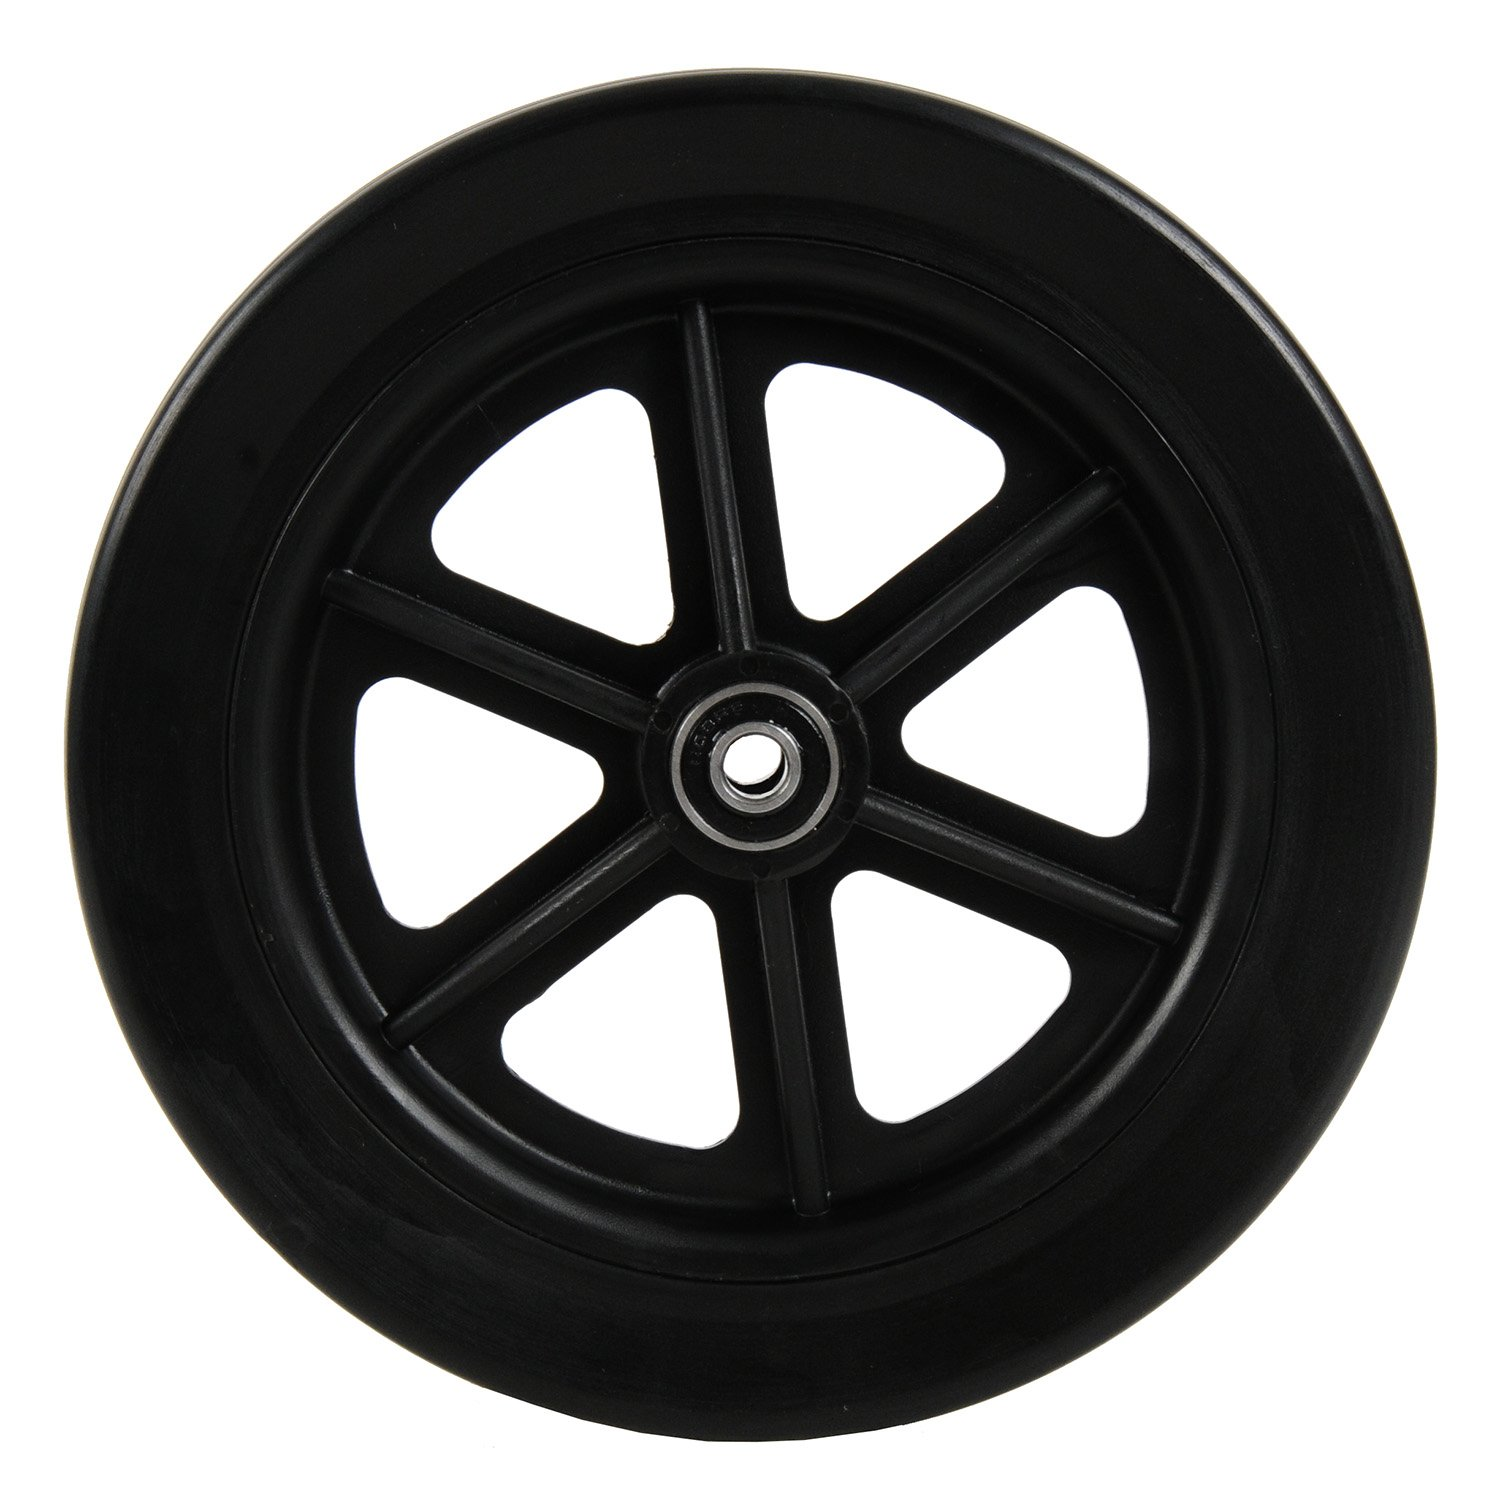 7 inch by 1 inch Black Replacement Wheel for Swivelmate Knee Walker, Wheelchairs, Rollators, Walking Frames and More, 7'' by 1'' Solid Flat Free Black Caster.